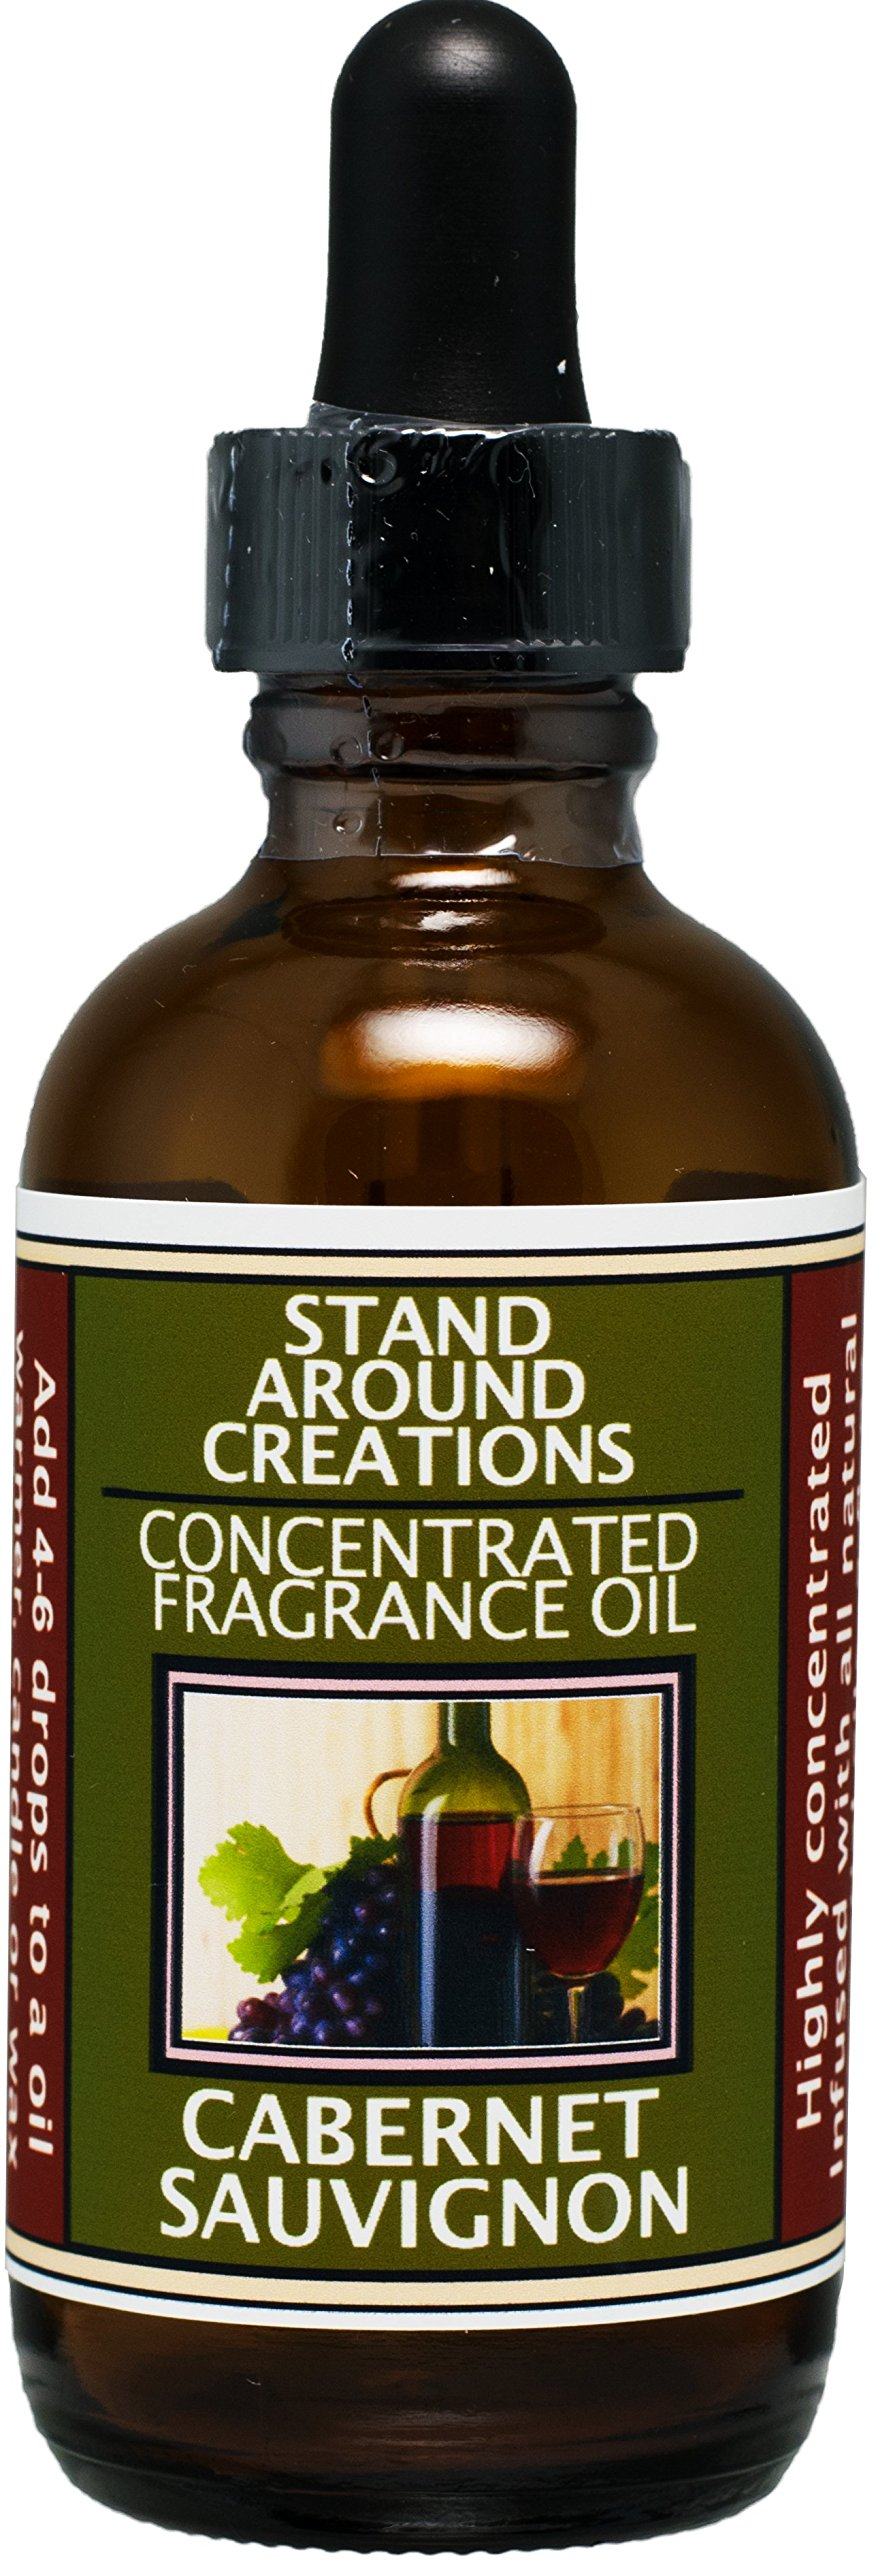 Concentrated Fragrance Oil - Scent - Cabernet Sauvignon- A sweet aroma of wild grapes w/sweet sugary notes. A wonderful aroma of red sweet wine.Infused w/essential oil. (2 fl.oz.) by Stand Around Creations (Image #1)